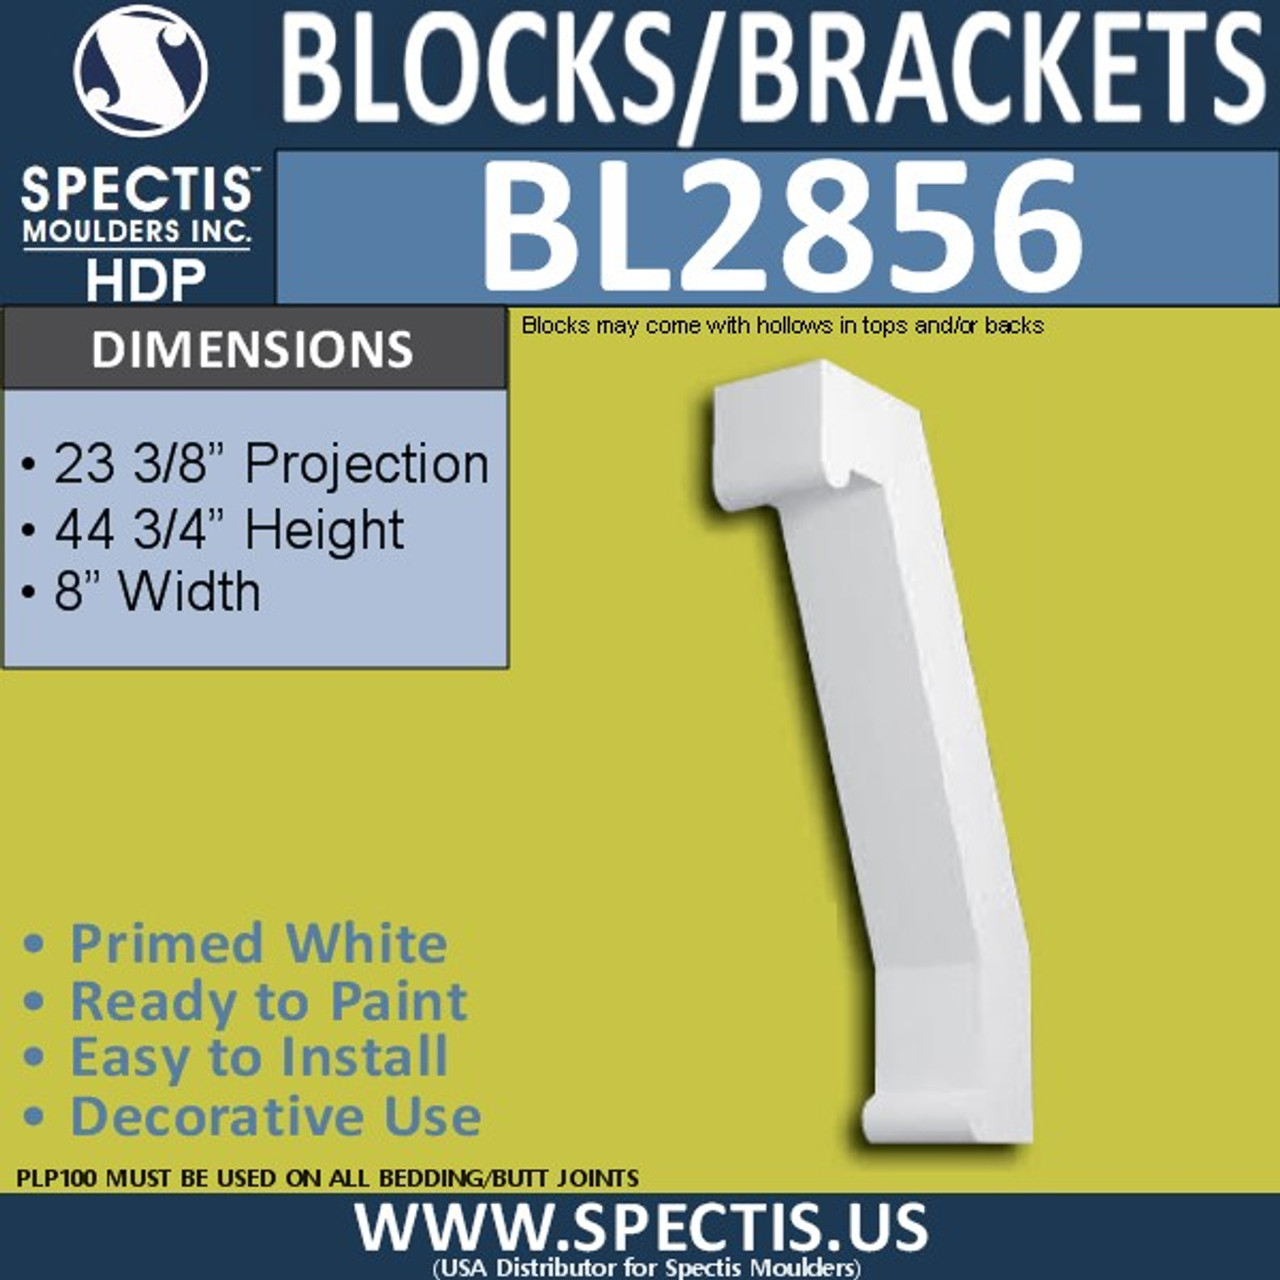 "BL2856 Eave Block or Bracket 8""W x 44.75""H x 23.5"" P"